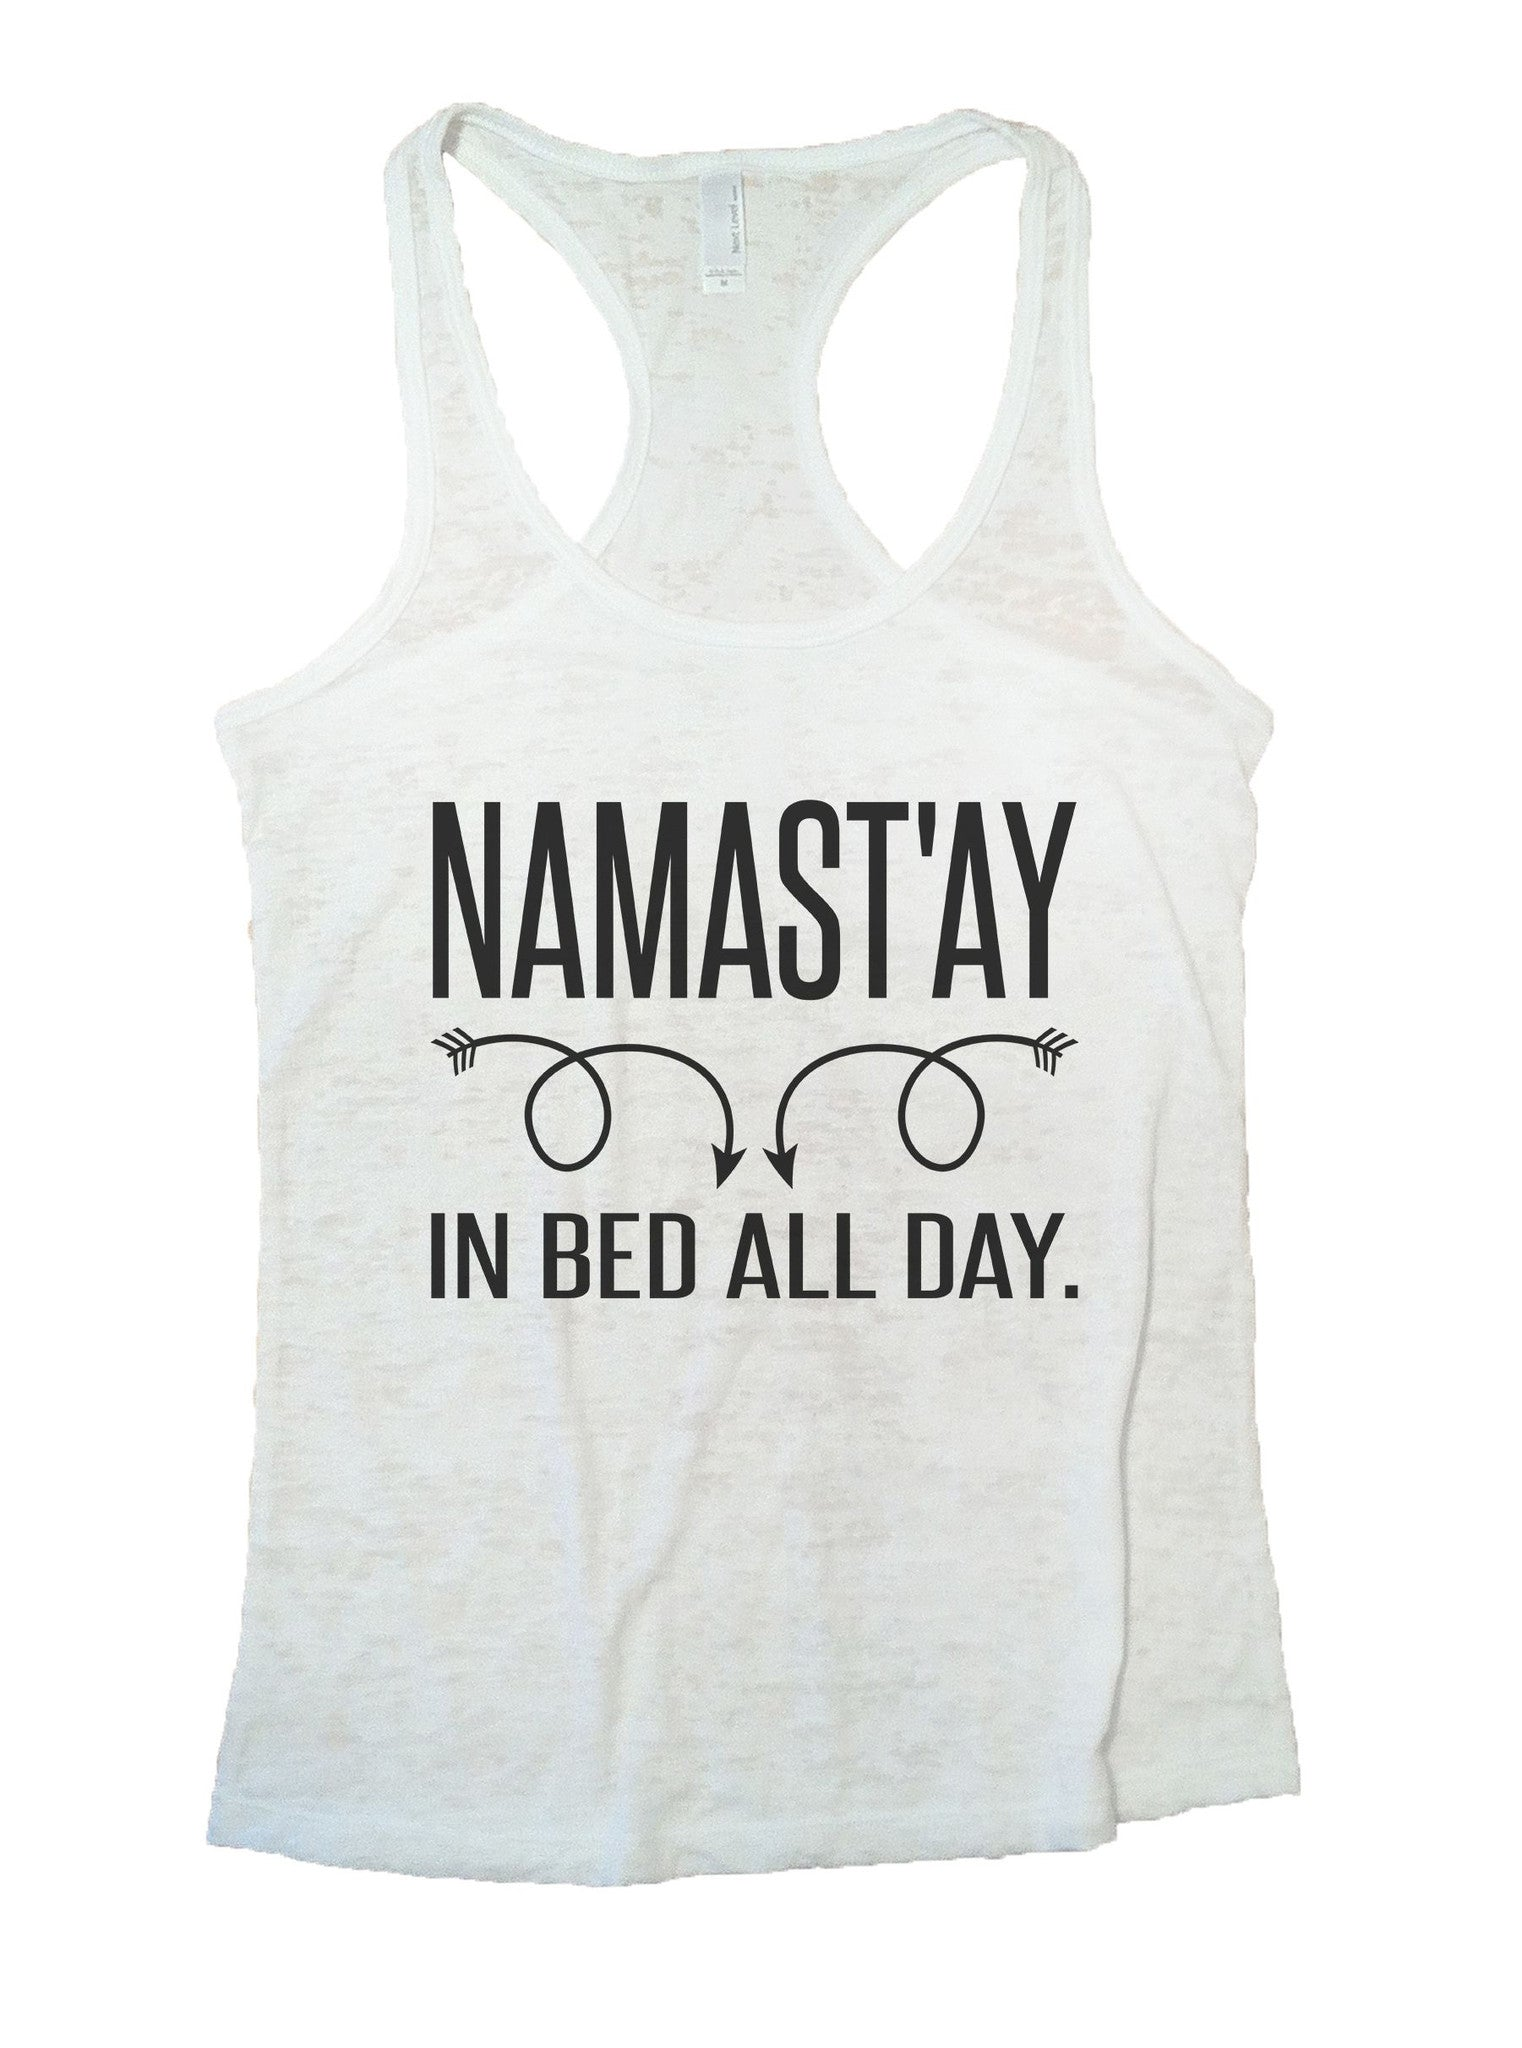 Namastay In Bed All Day Burnout Tank Top By Funny Treadz - 919 - Funny Shirts Tank Tops Burnouts and Triblends  - 5